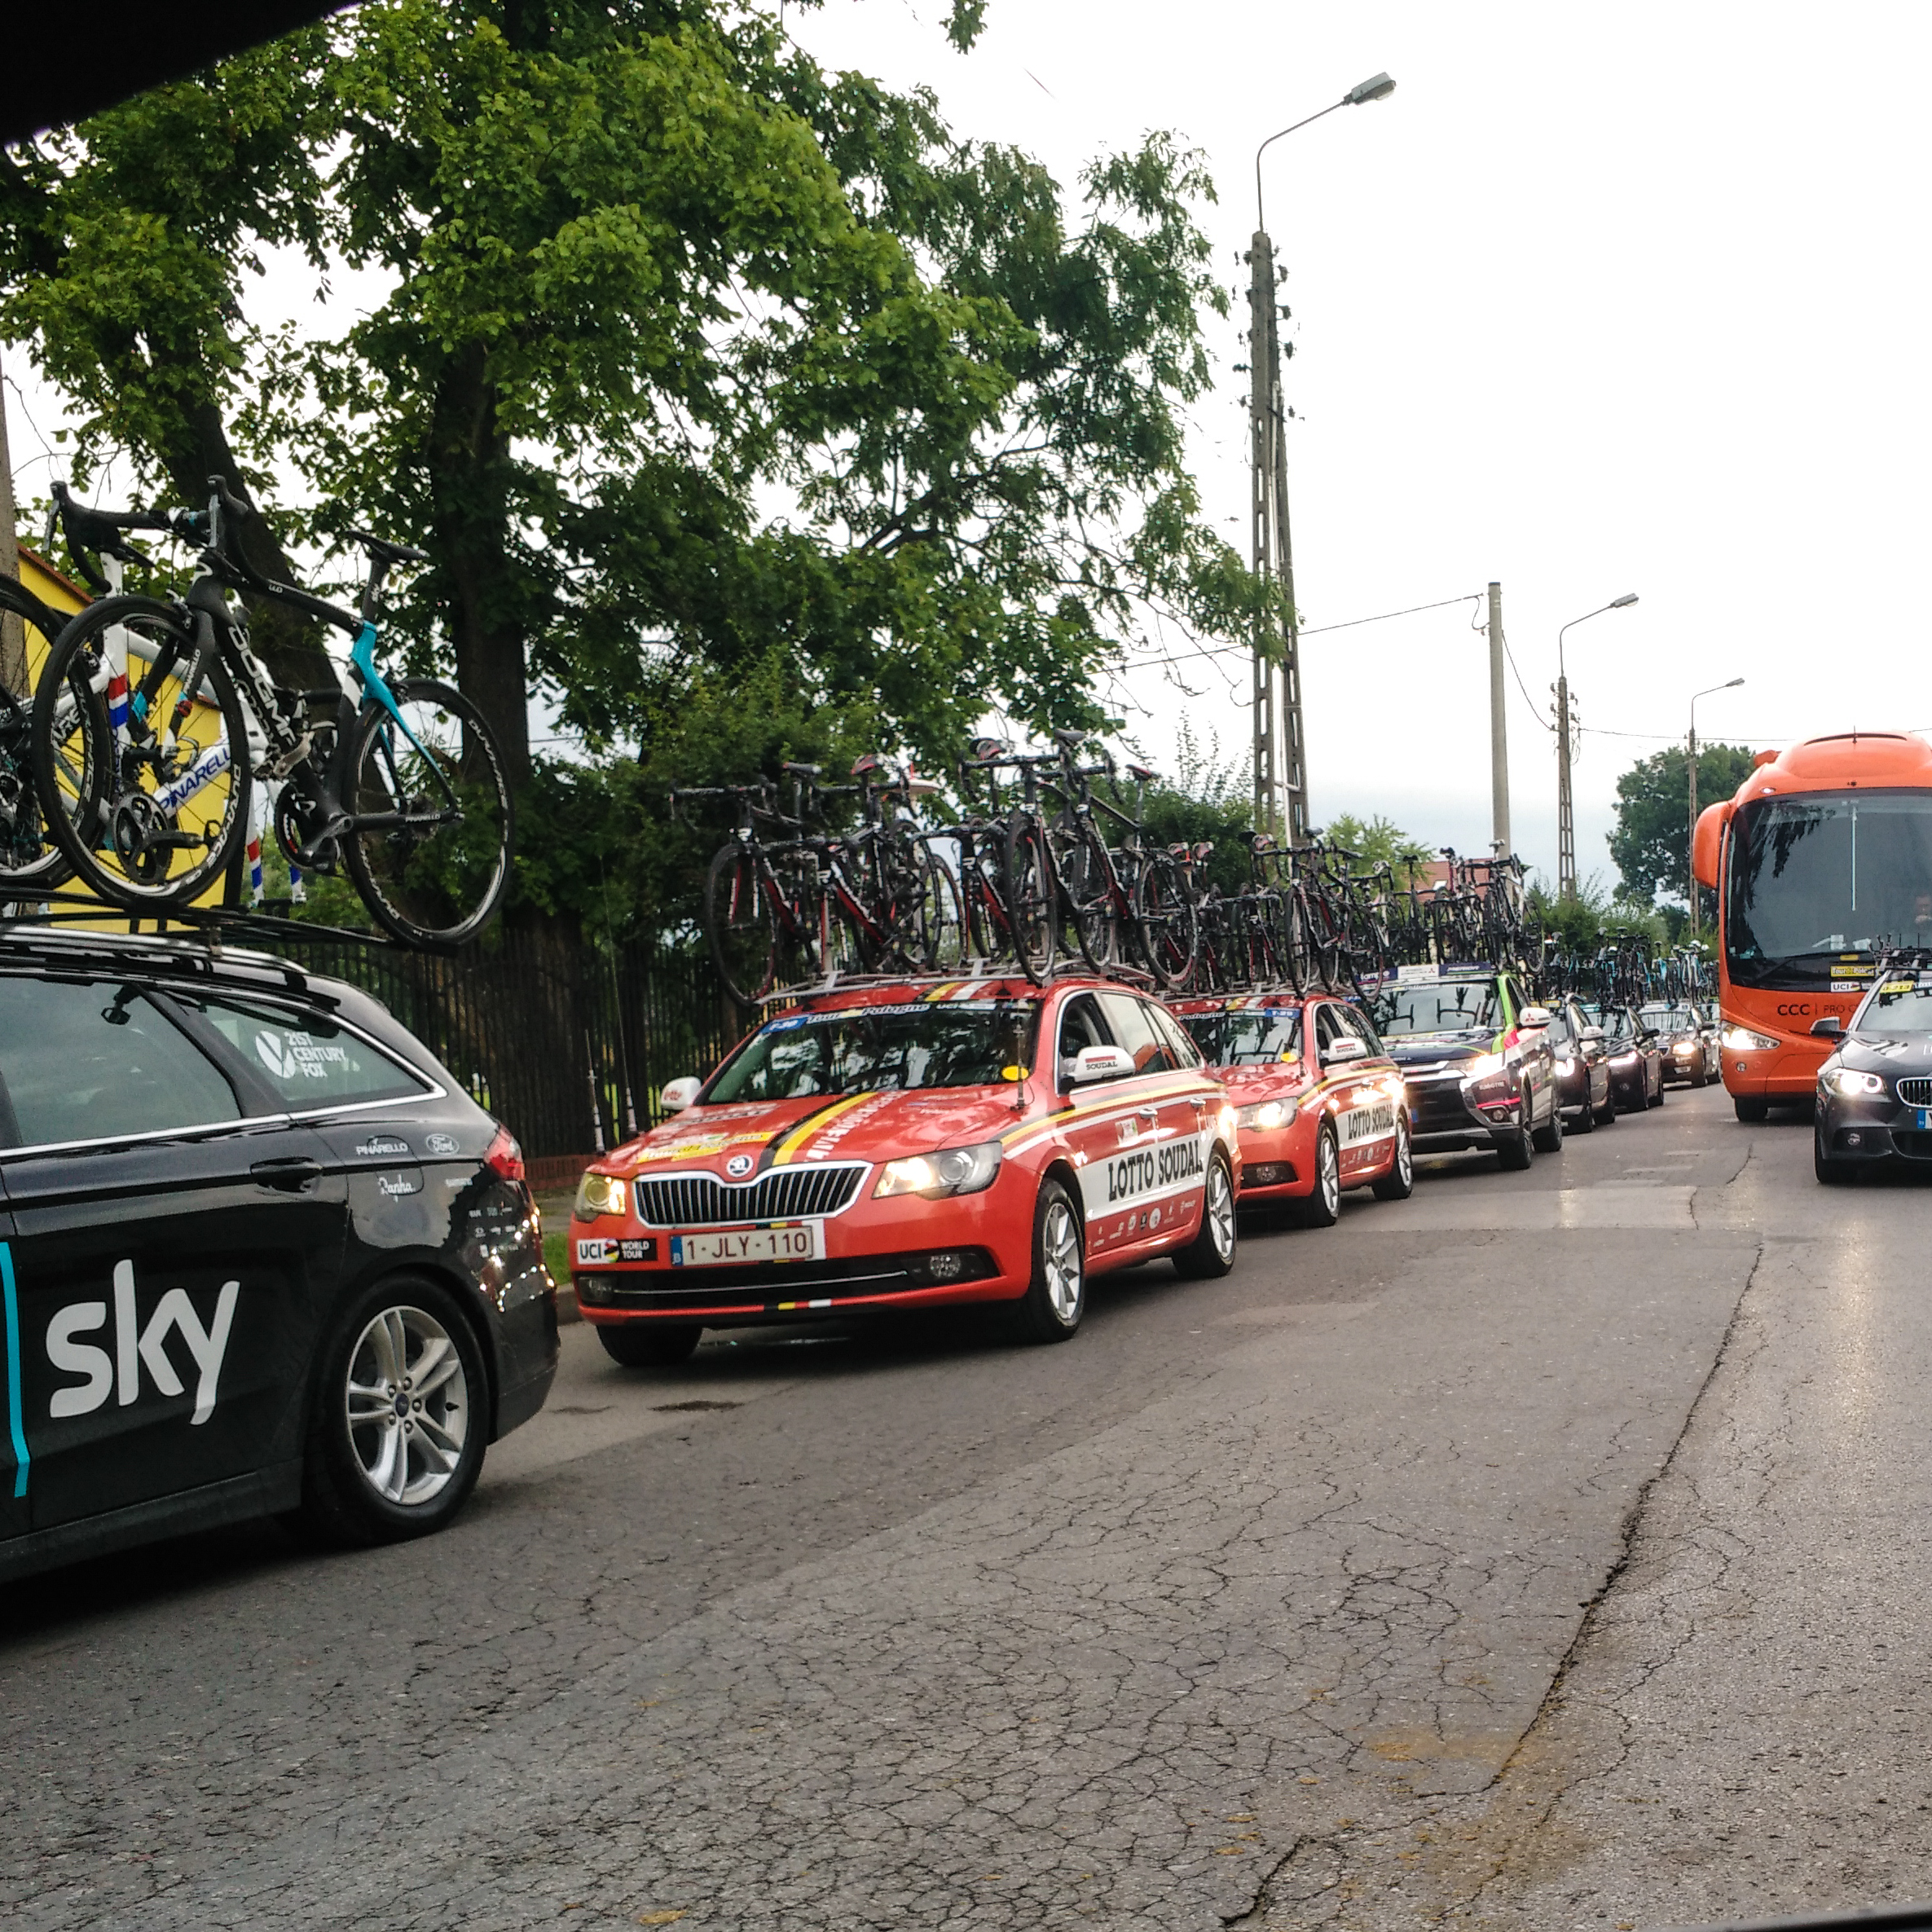 Bike racing, driving, Tour de Pologne, music, playlist, health, fitness, pro cycling, cycling,